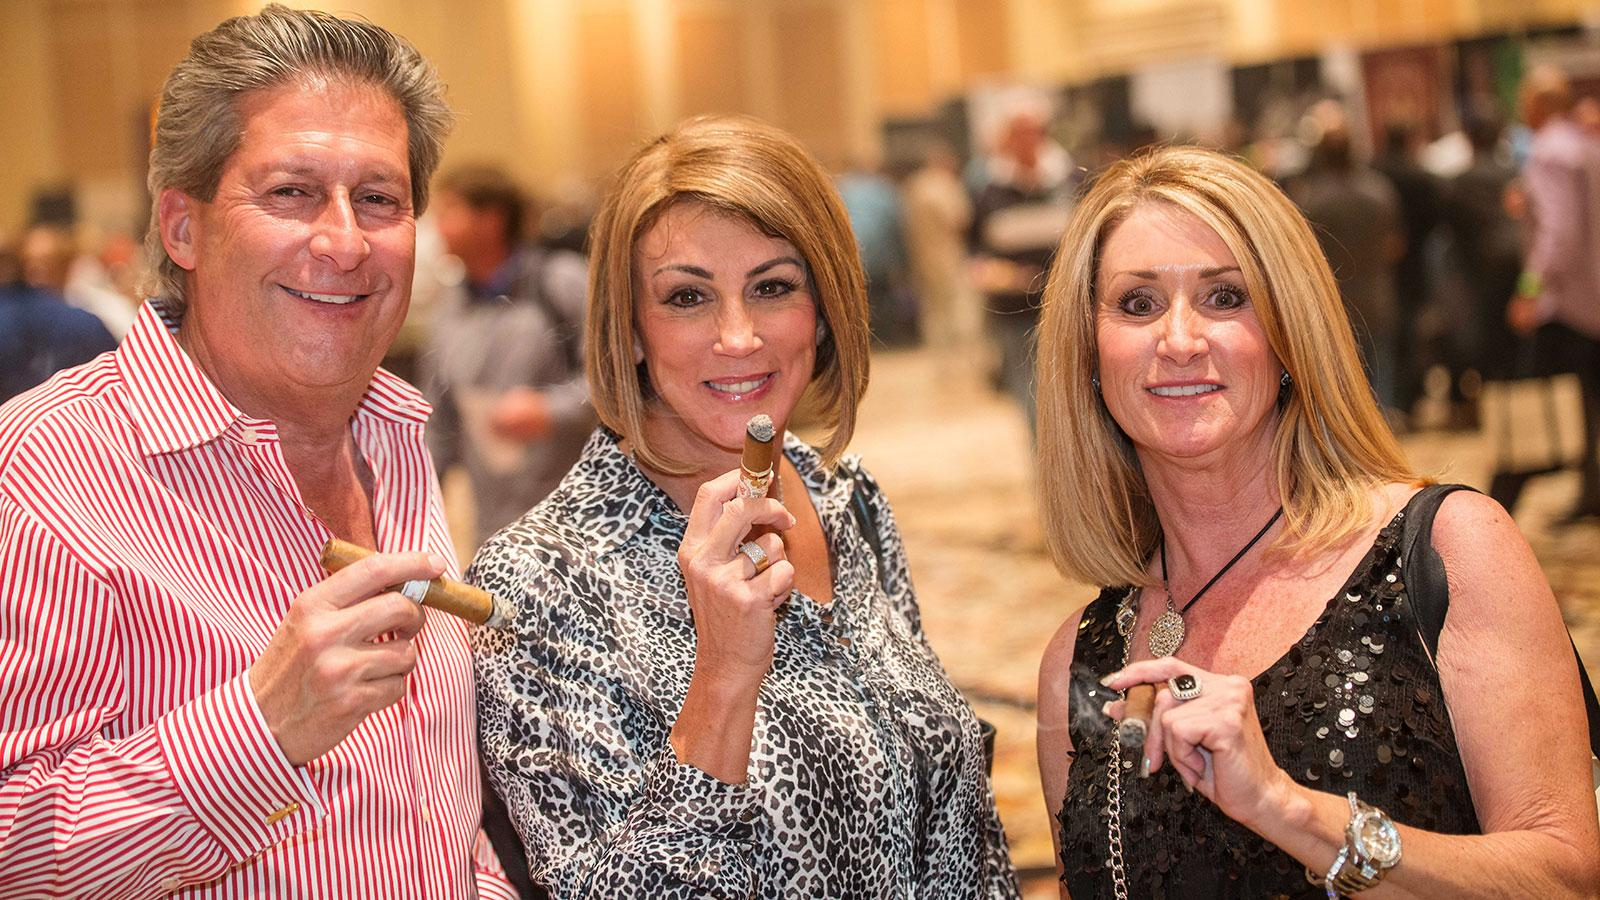 Richard Karle, Tina Young and Michelle Pace enjoy a few fine cigars at the Big Smoke Evening.